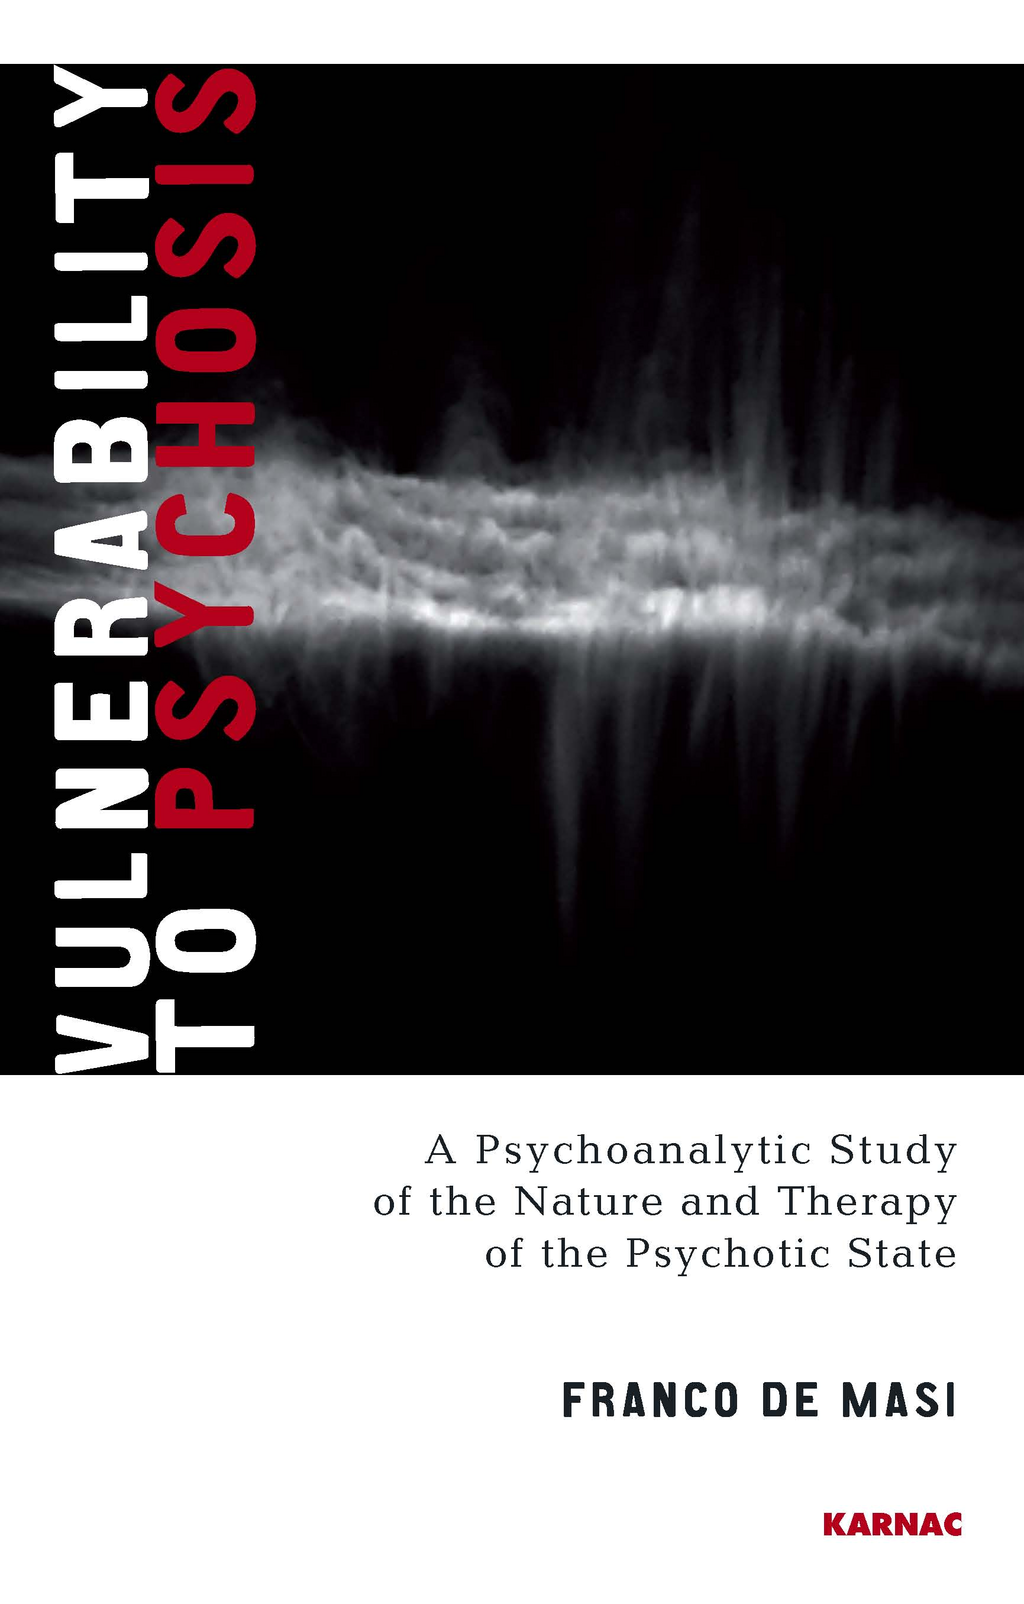 Vulnerability to Psychosis: A Psychoanalytic Study of the Nature and Therapy of the Psychotic State By: Franco De Masi